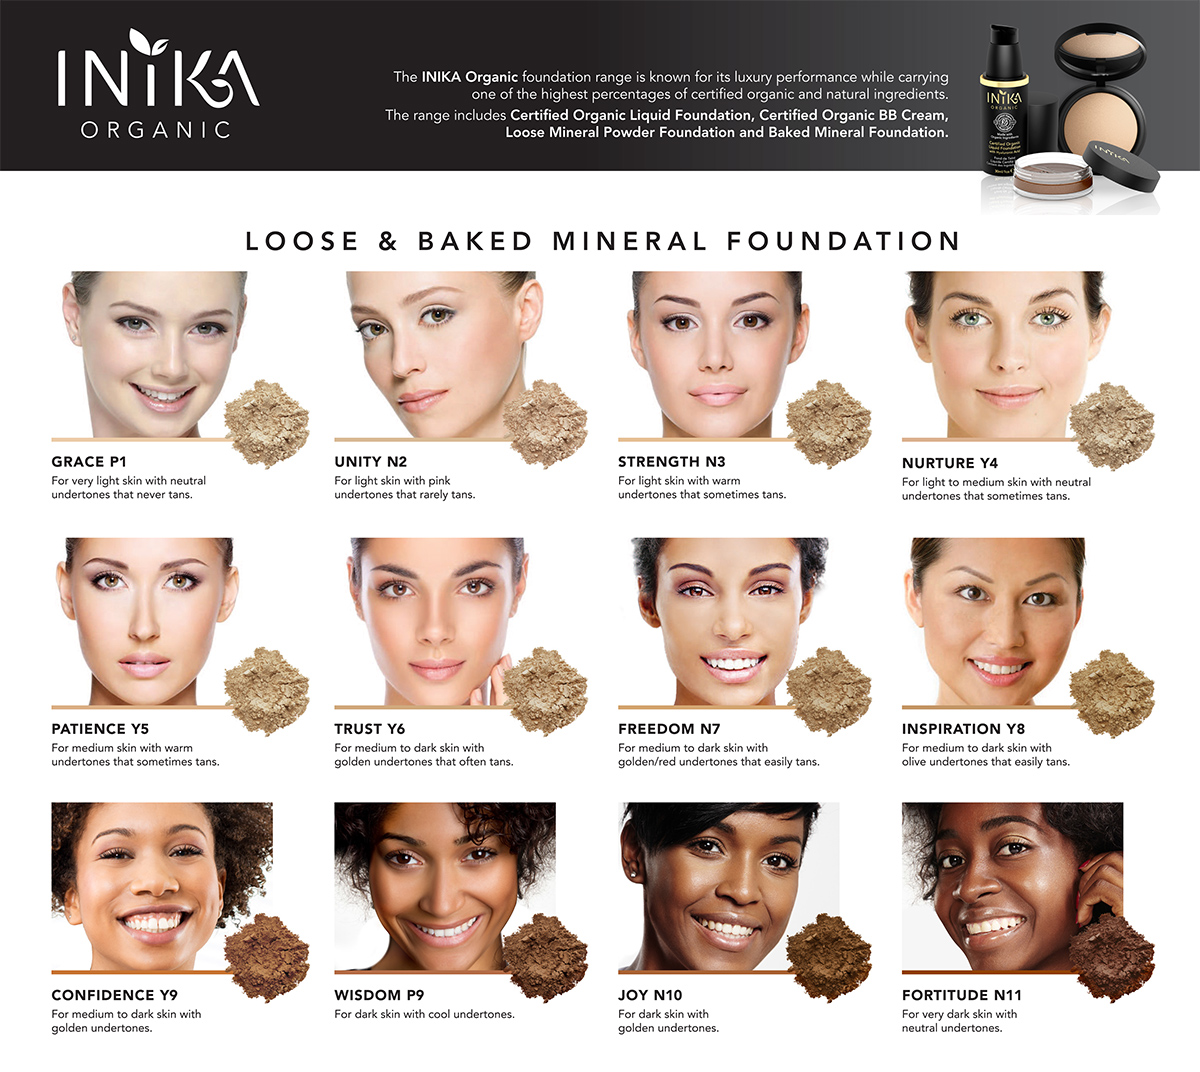 Inika Shade Guide & Finder for Pure Mineral Powder Foundation